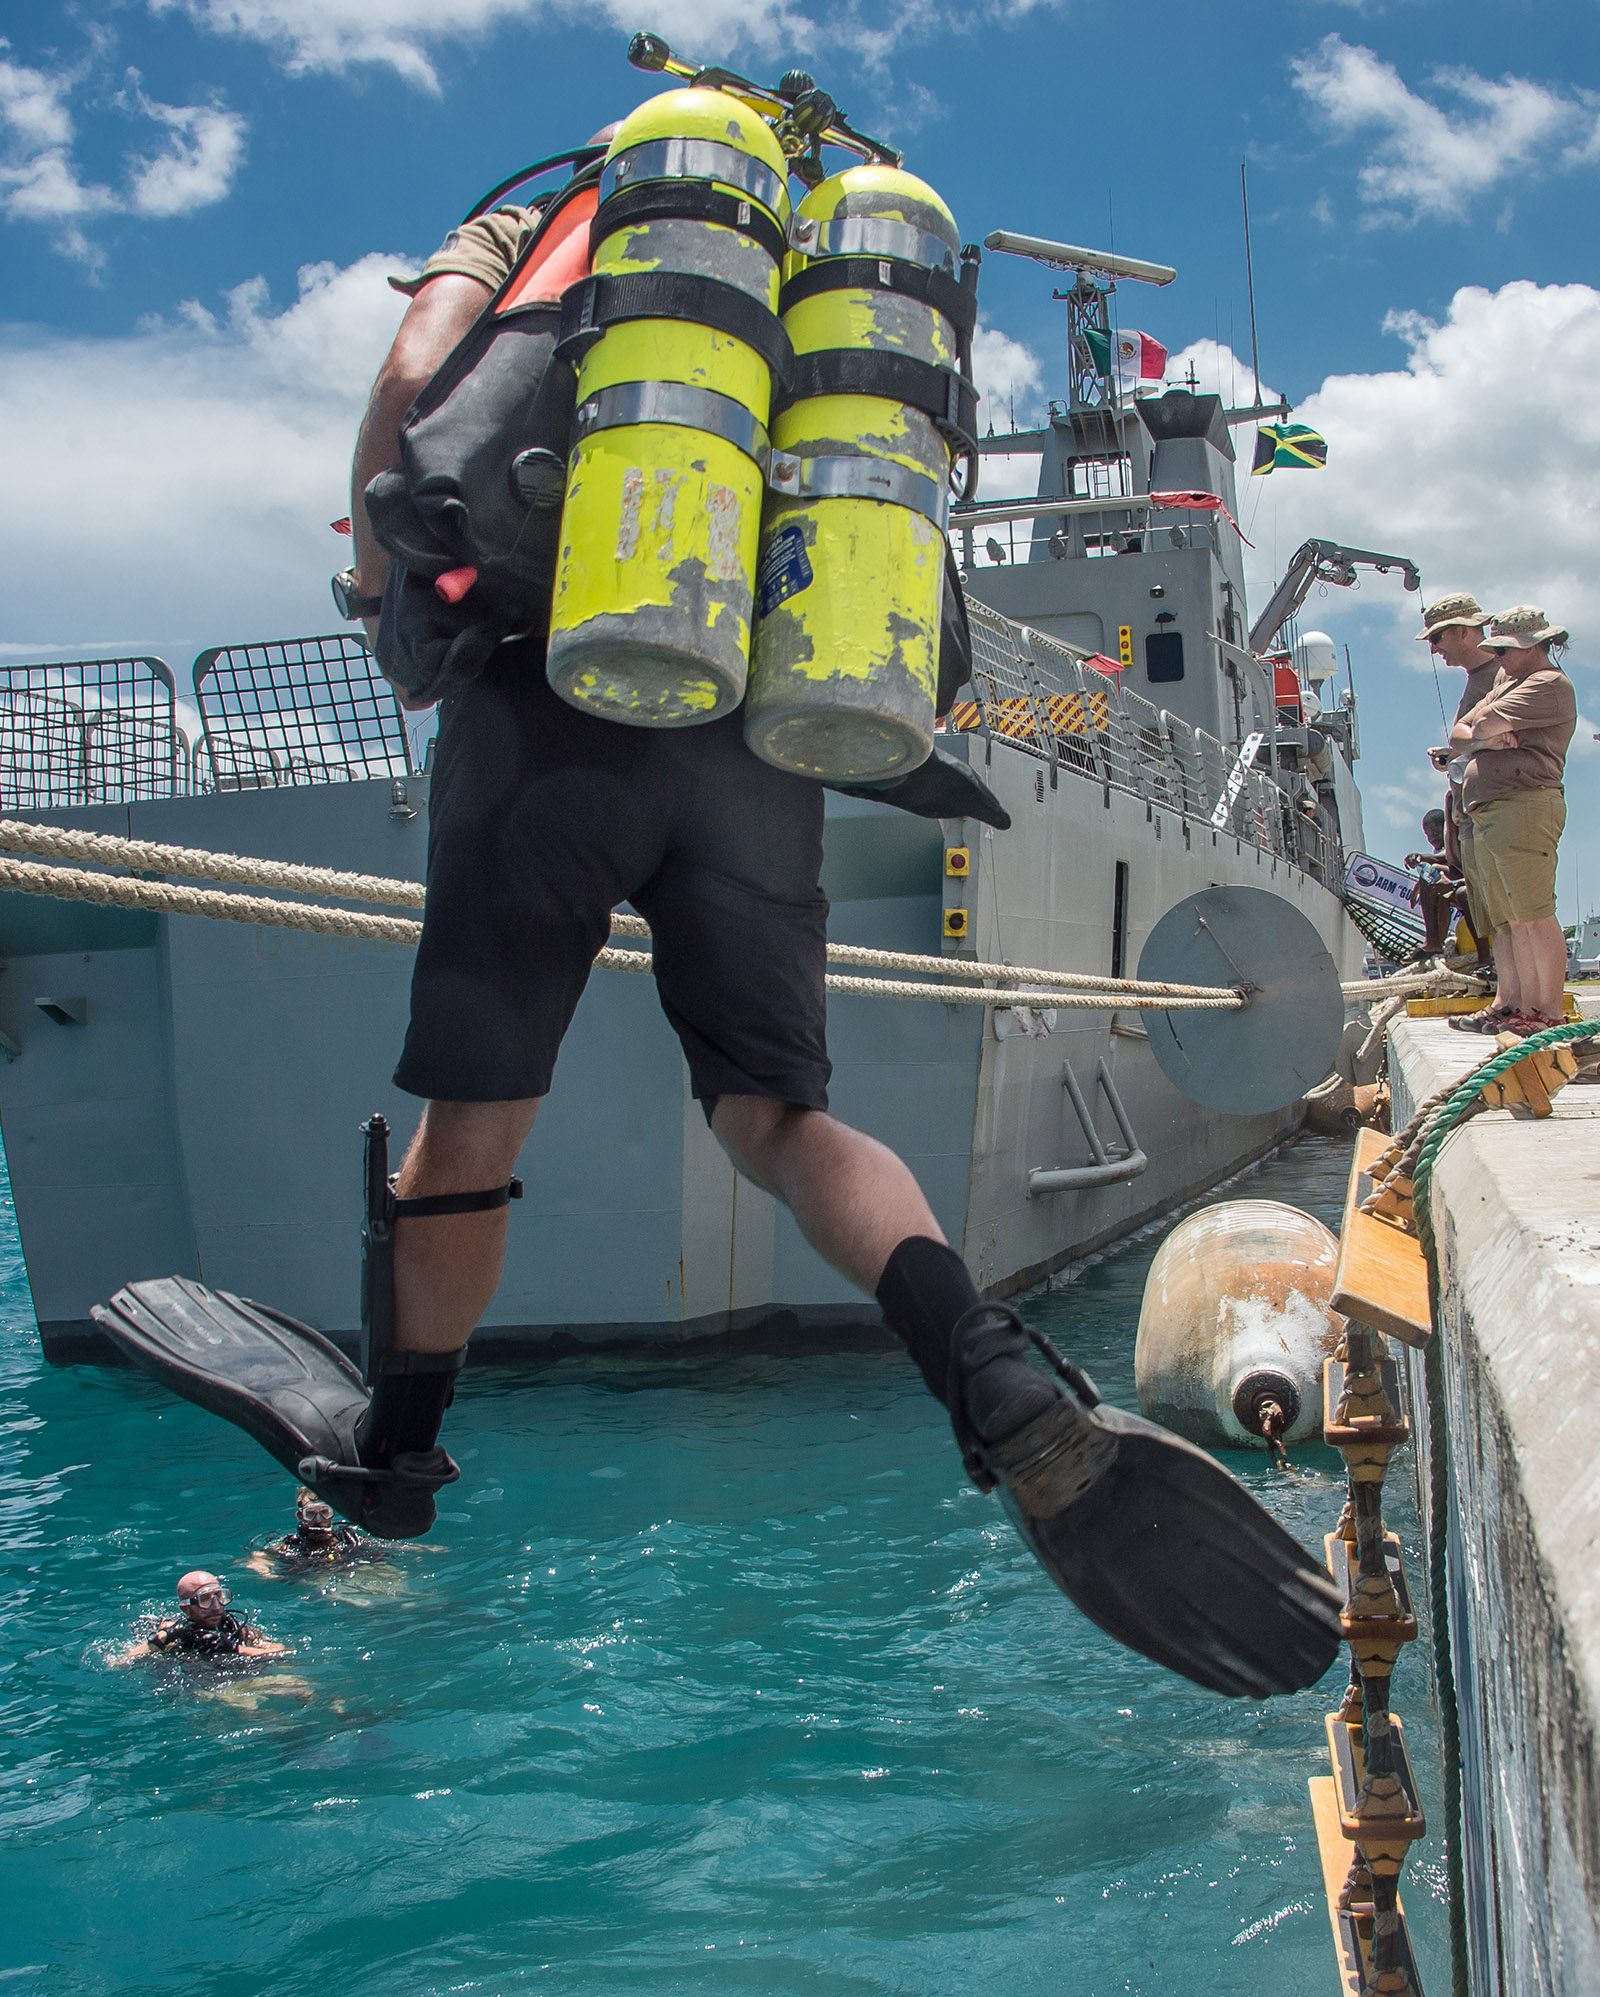 A Canadian Armed Forces diver jumps from a jetty during Exercise TRADEWINDS 16 in Montego Bay, Jamaica on June 20, 2016.